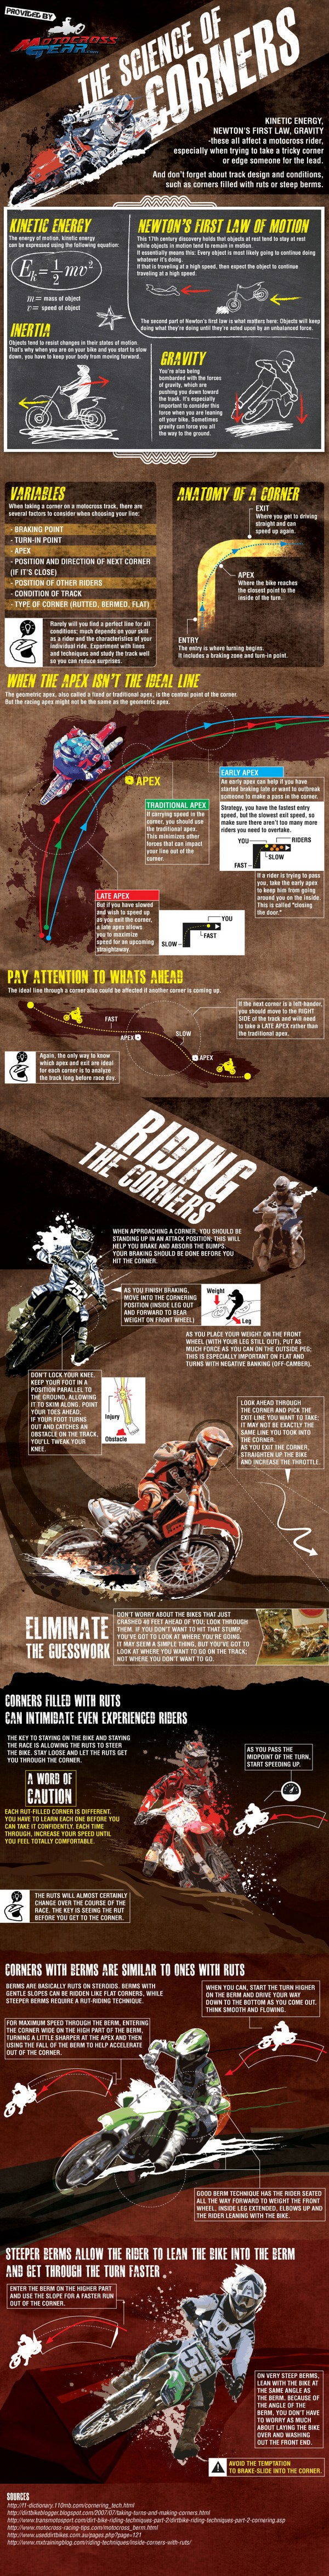 infographic-9-motocross-riding